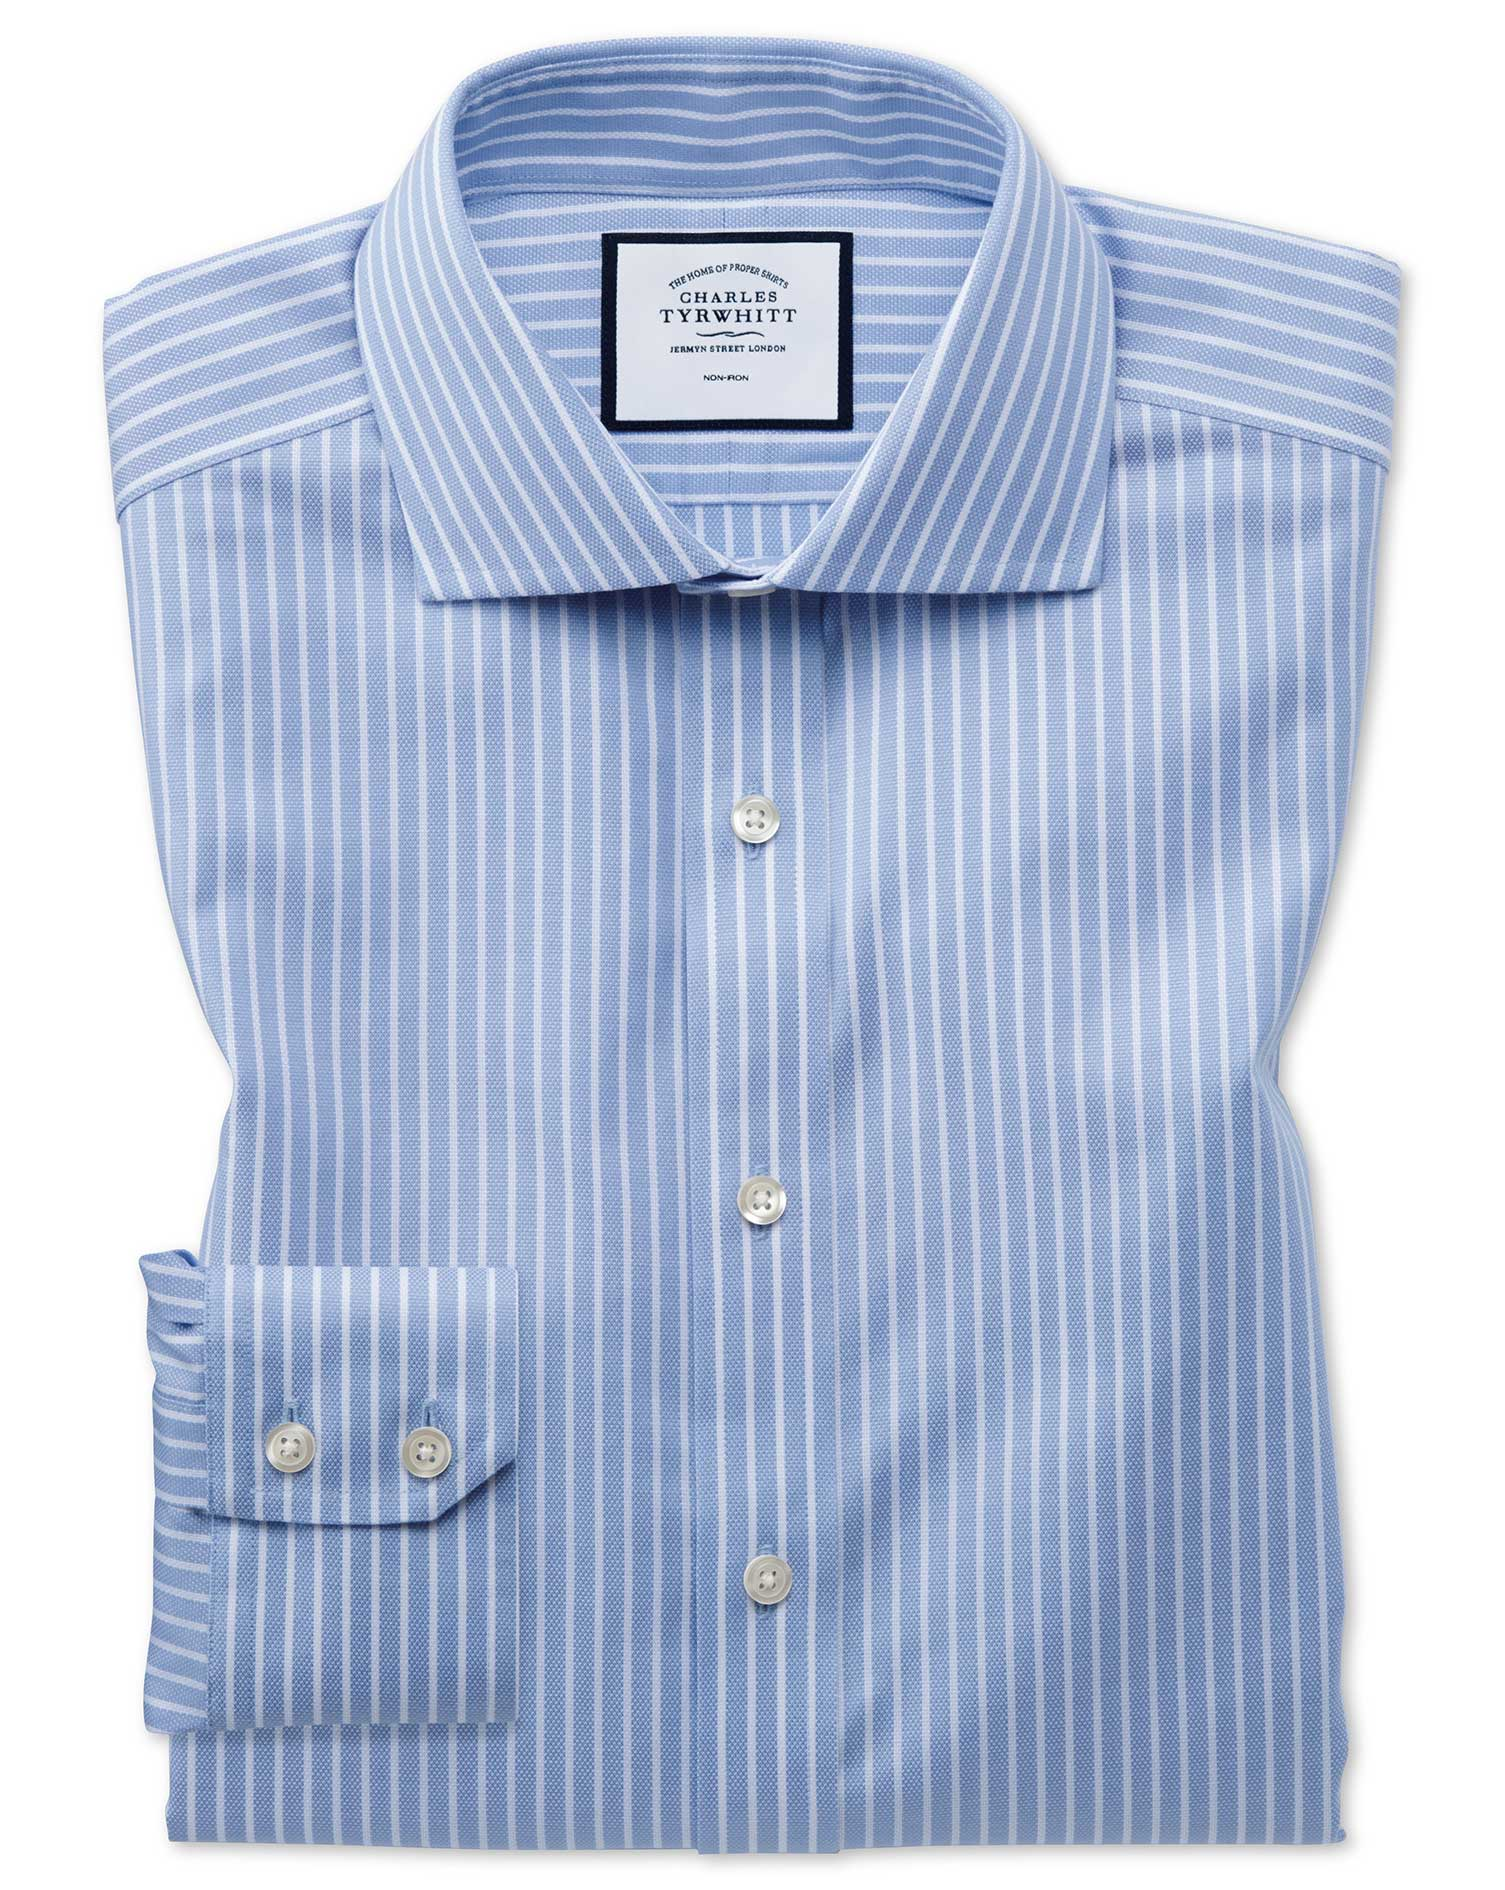 Slim Fit Non-Iron Cotton Stretch Oxford Sky Blue and White Stripe Formal Shirt Single Cuff Size 16/3